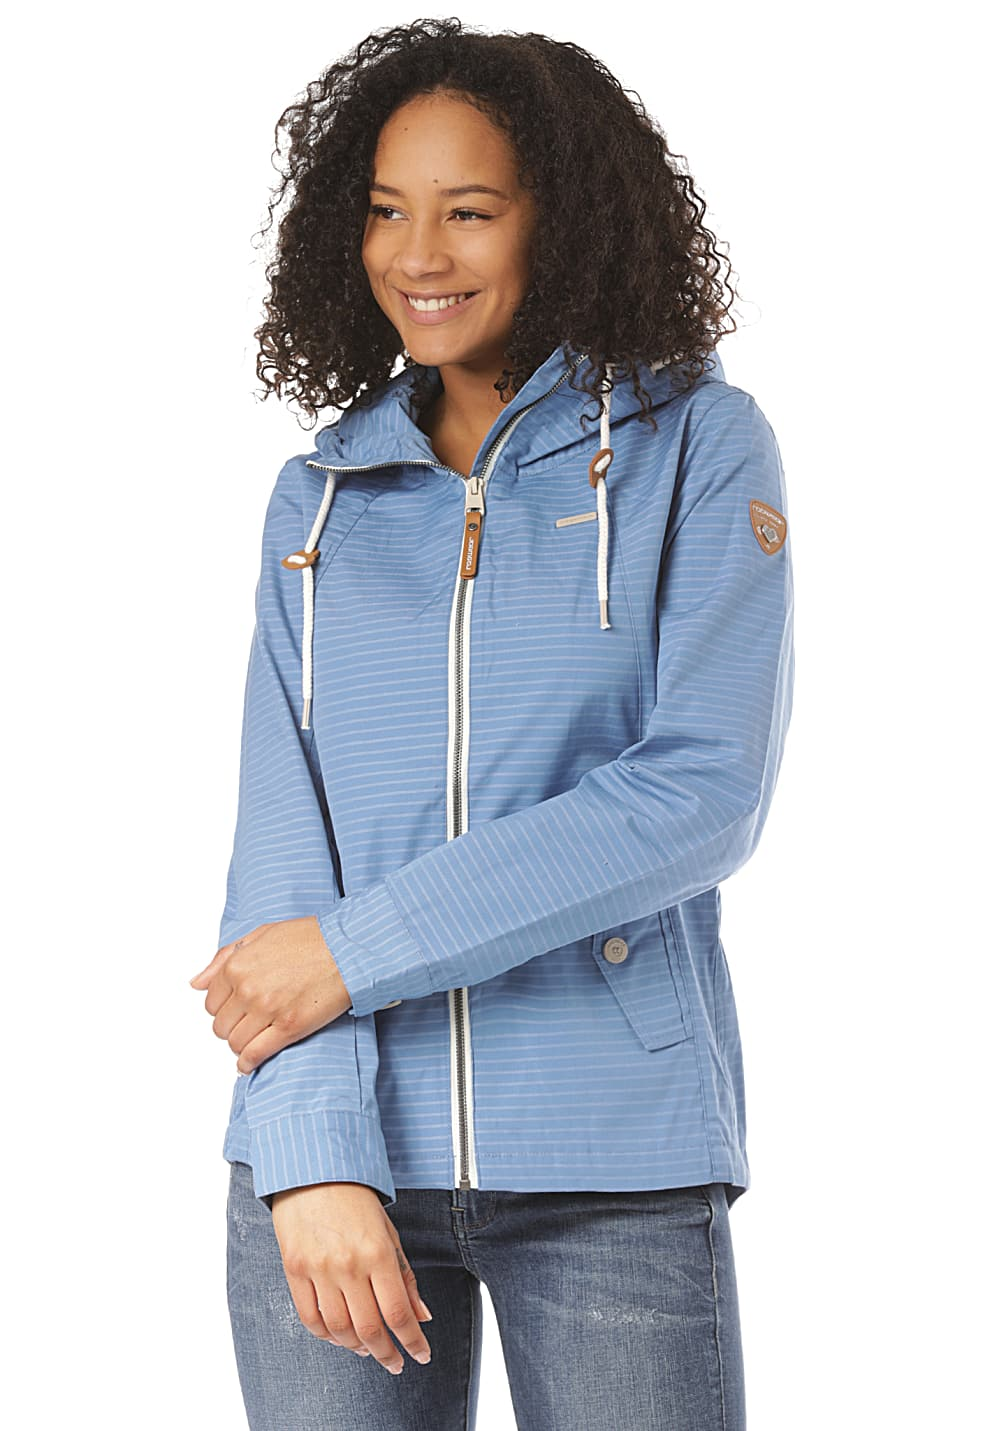 Jacken - ragwear Monade Stripes Jacke für Damen Blau  - Onlineshop Planet Sports